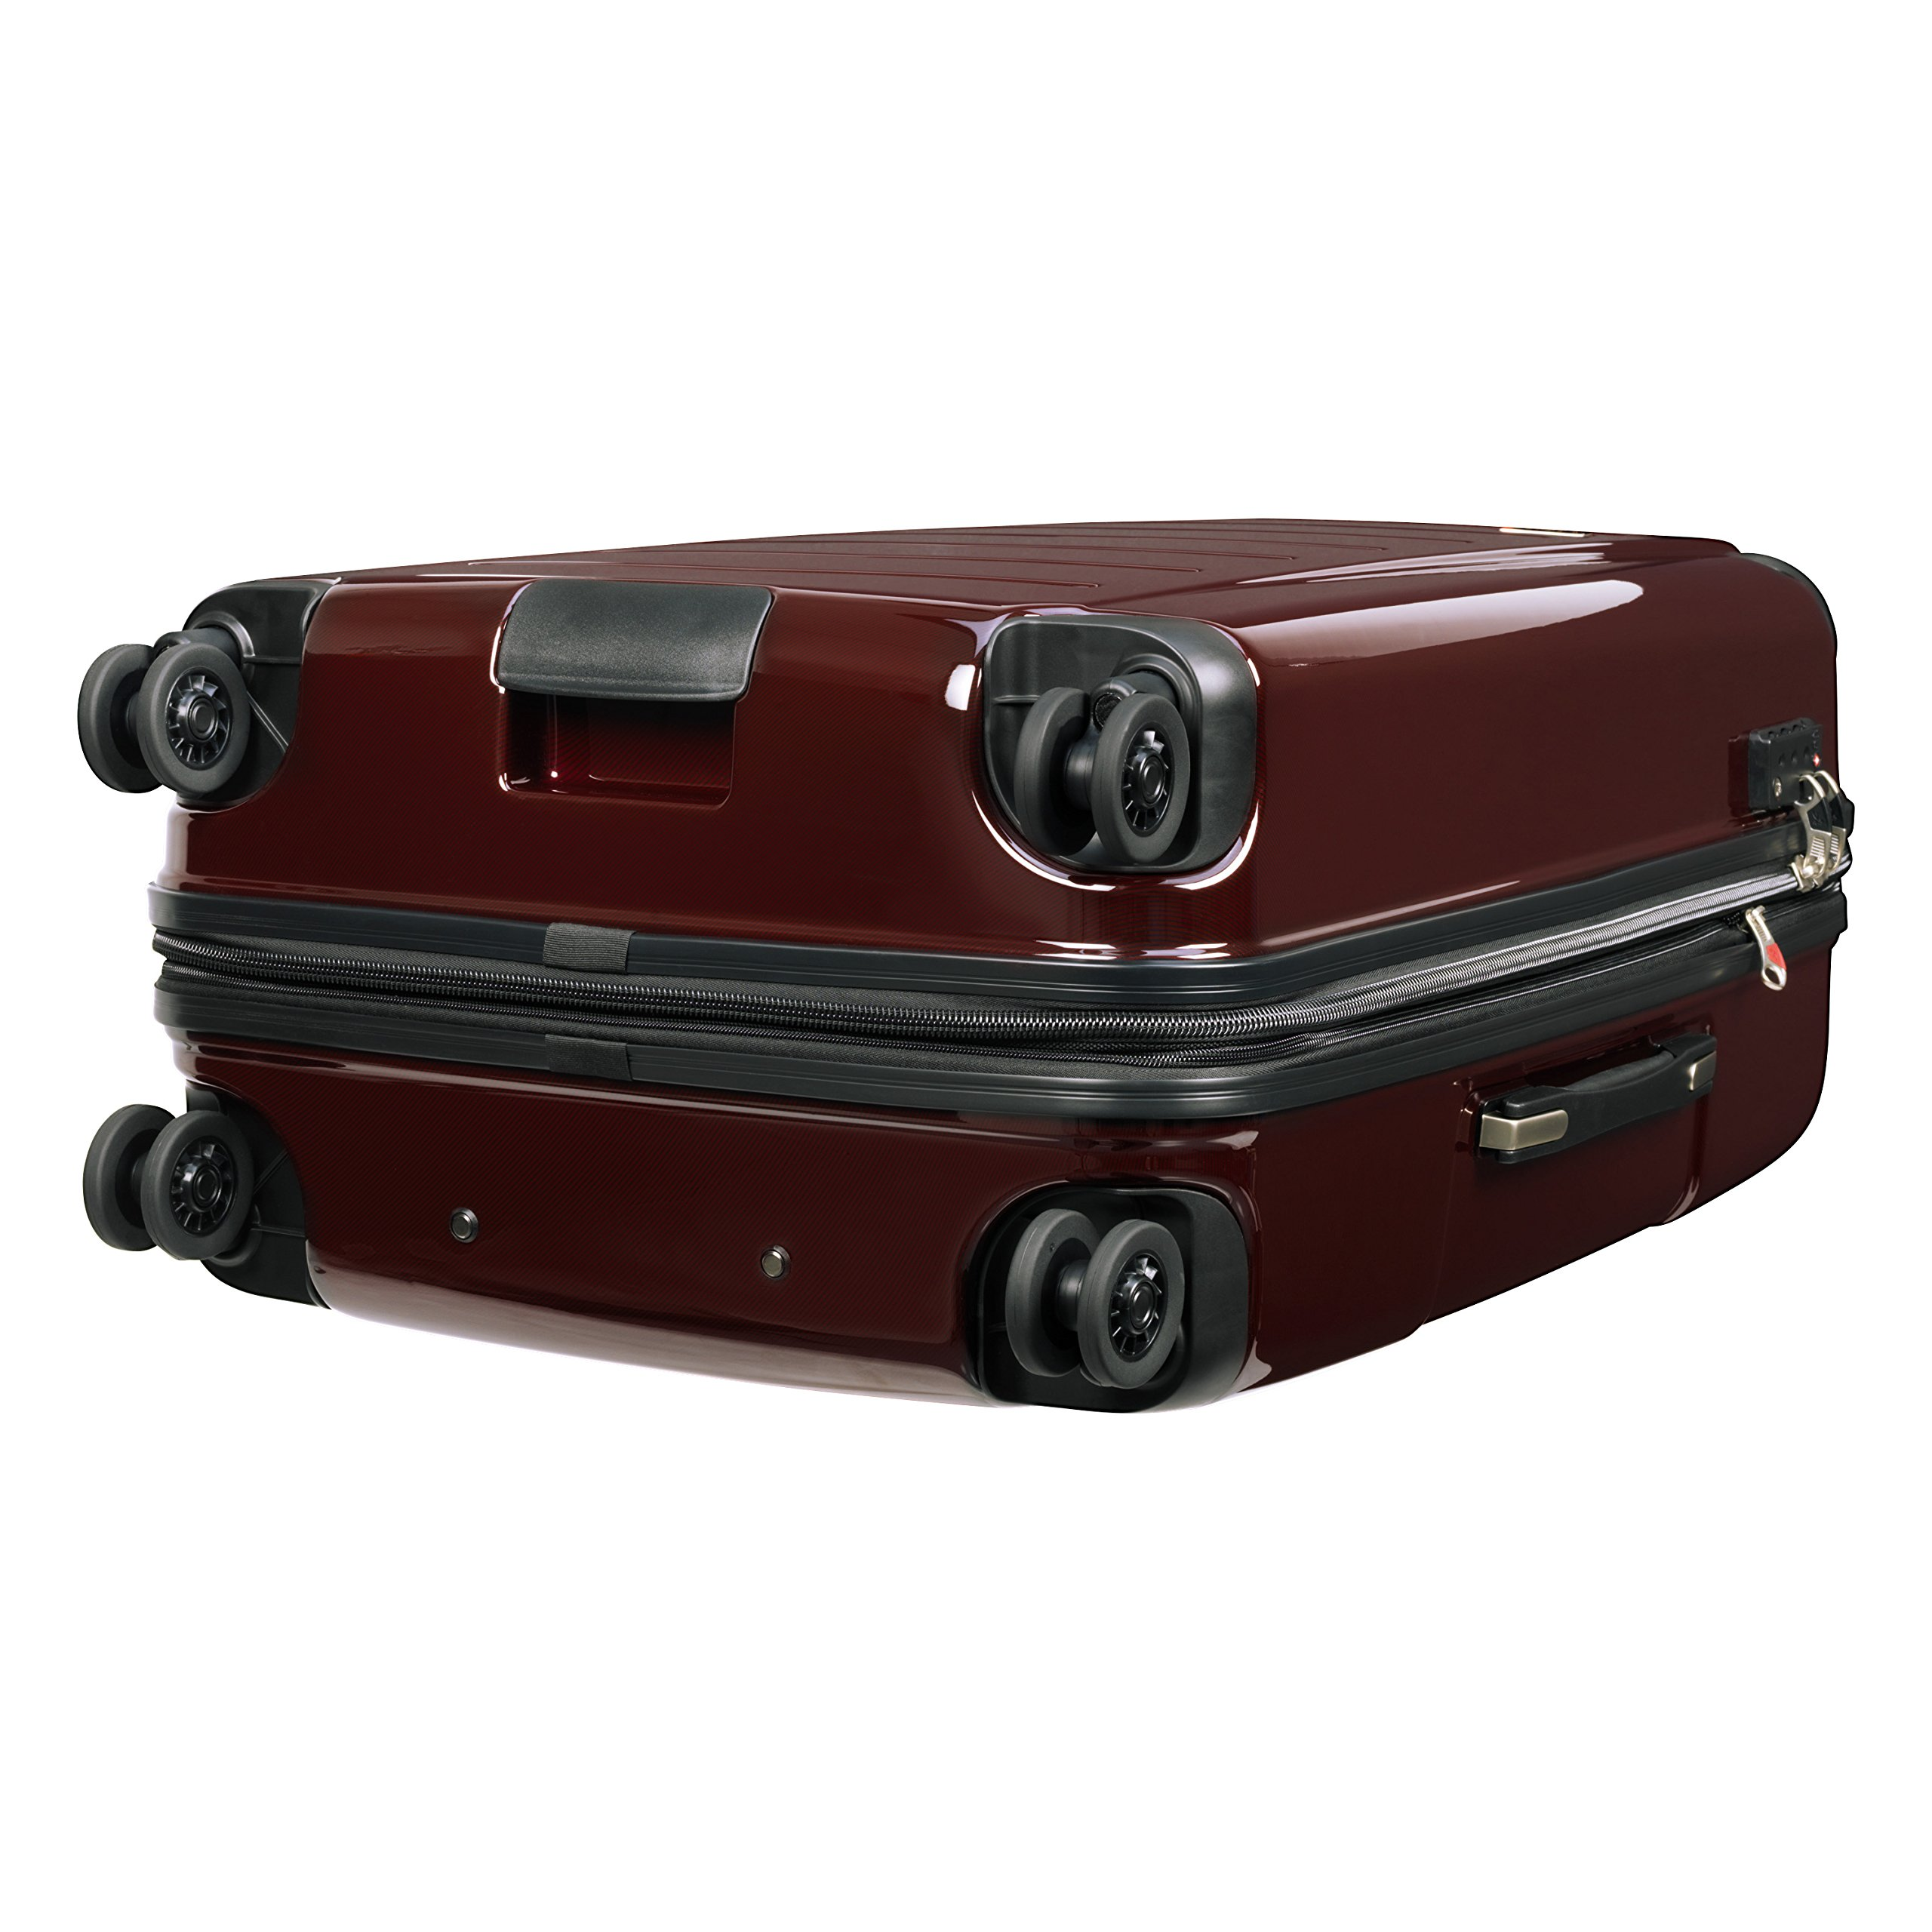 Ricardo Beverly Hills Luggage Rodeo Drive 29-Inch 4-Wheel Expandable Upright, Black Cherry, One Size by Ricardo Beverly Hills (Image #5)